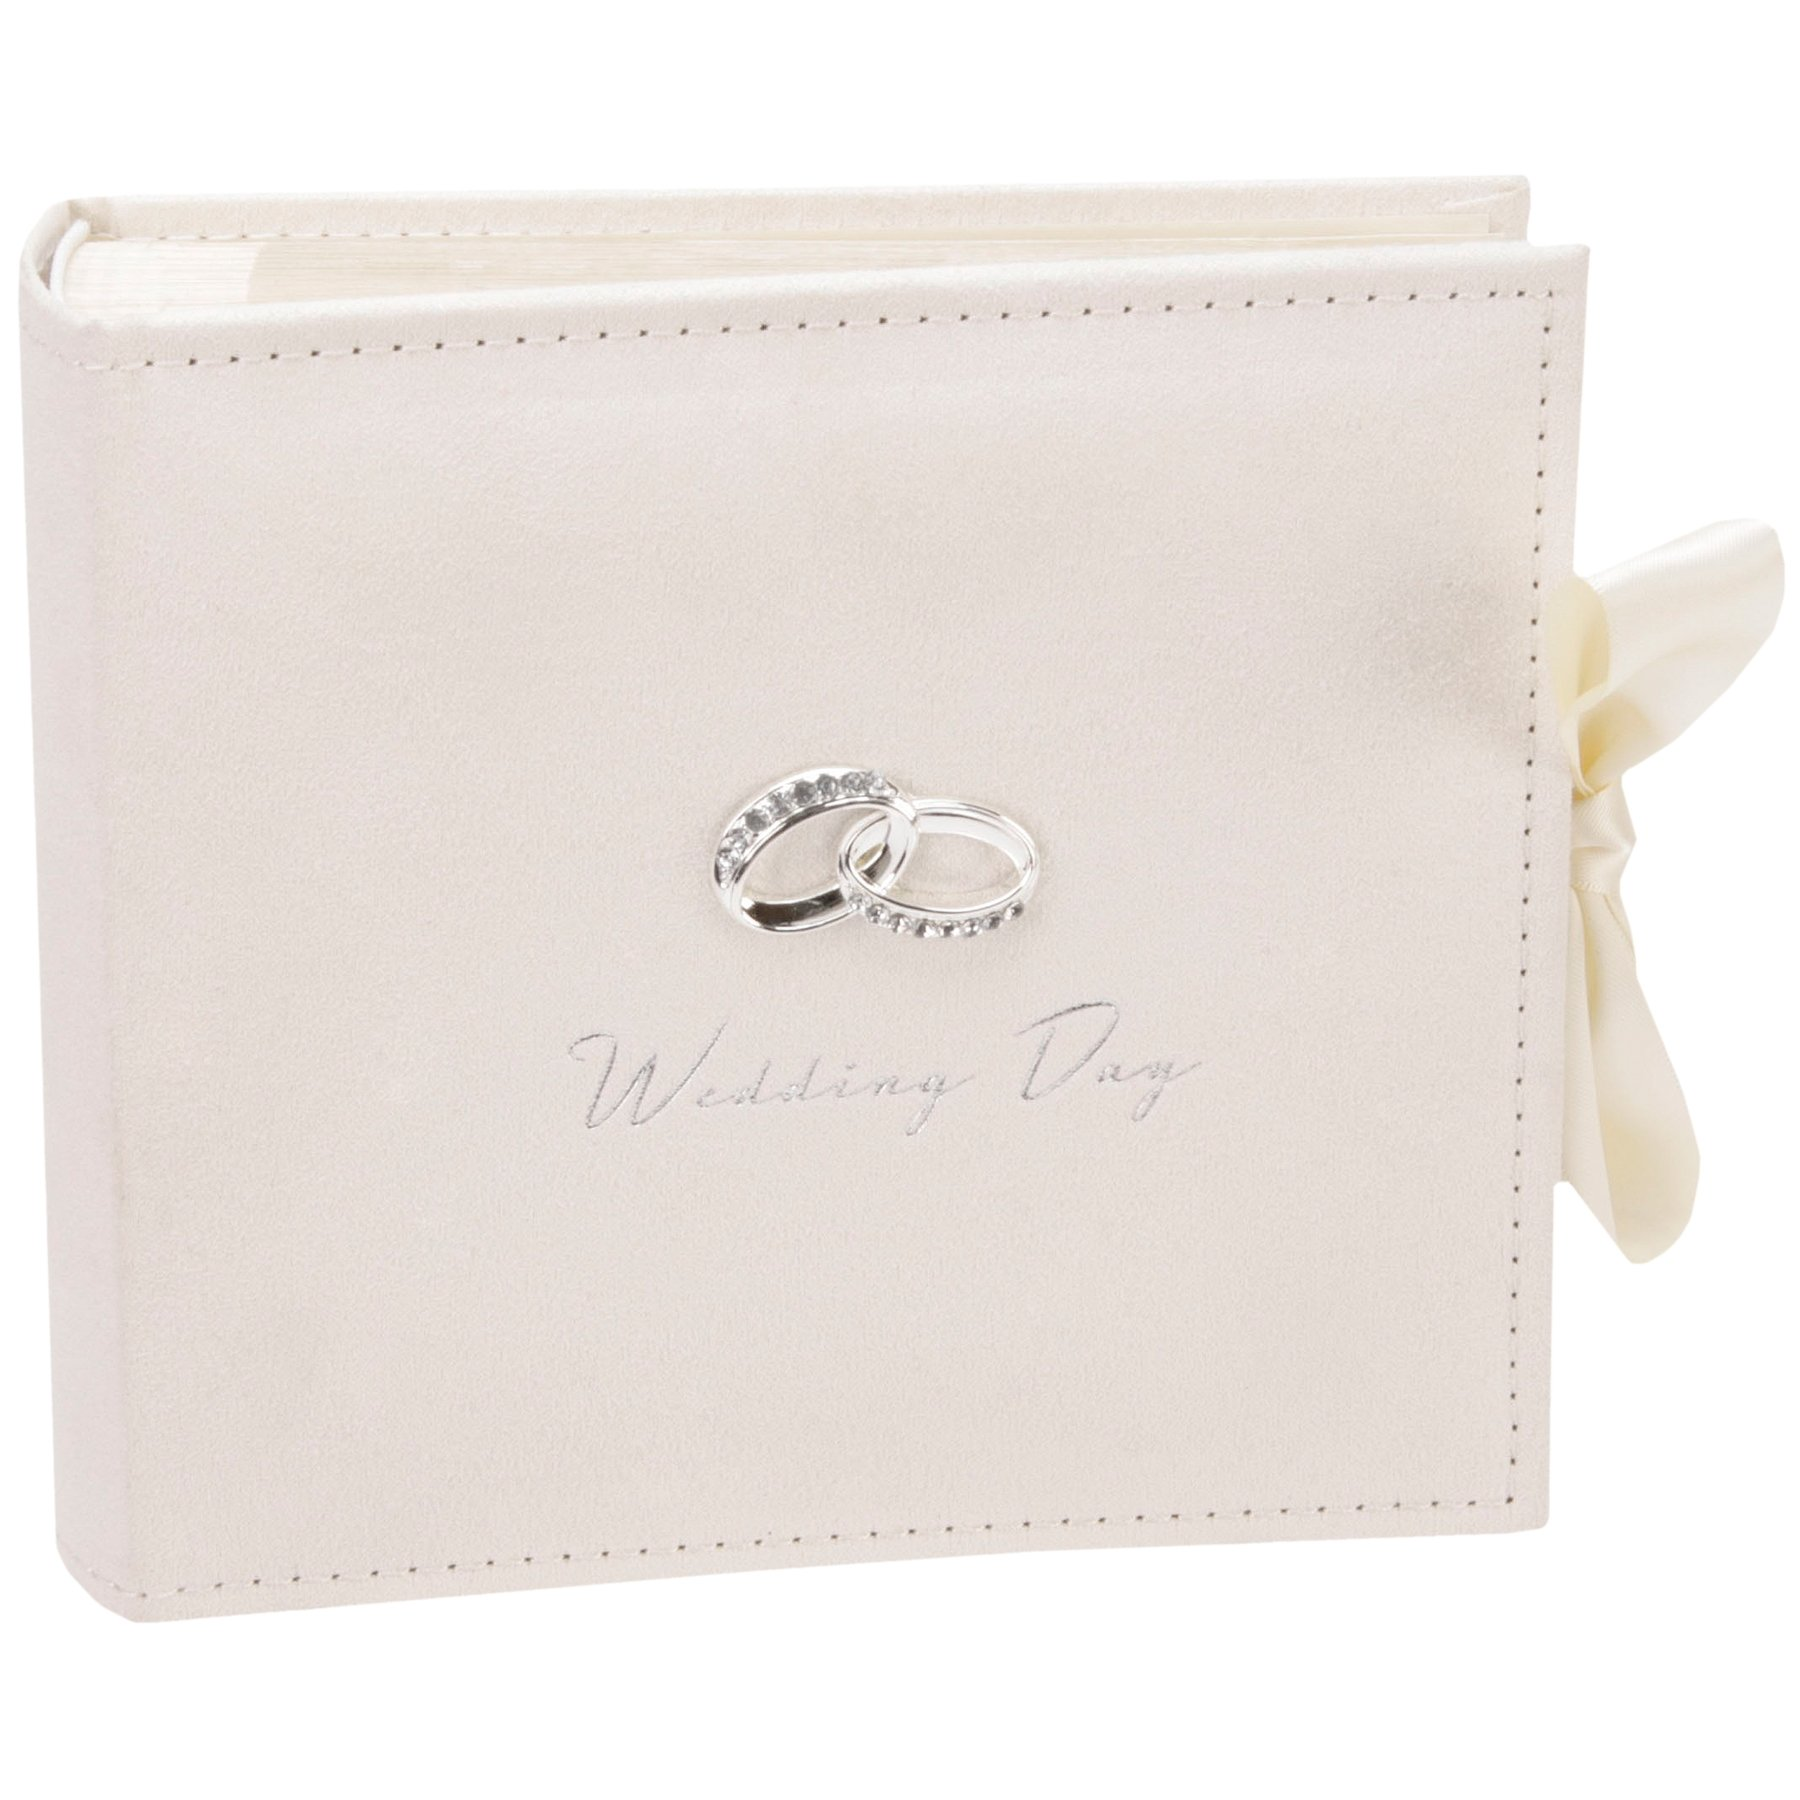 Amore Wedding Gifts. Beautiful Ivory 100 Picture Photo Album by wdd